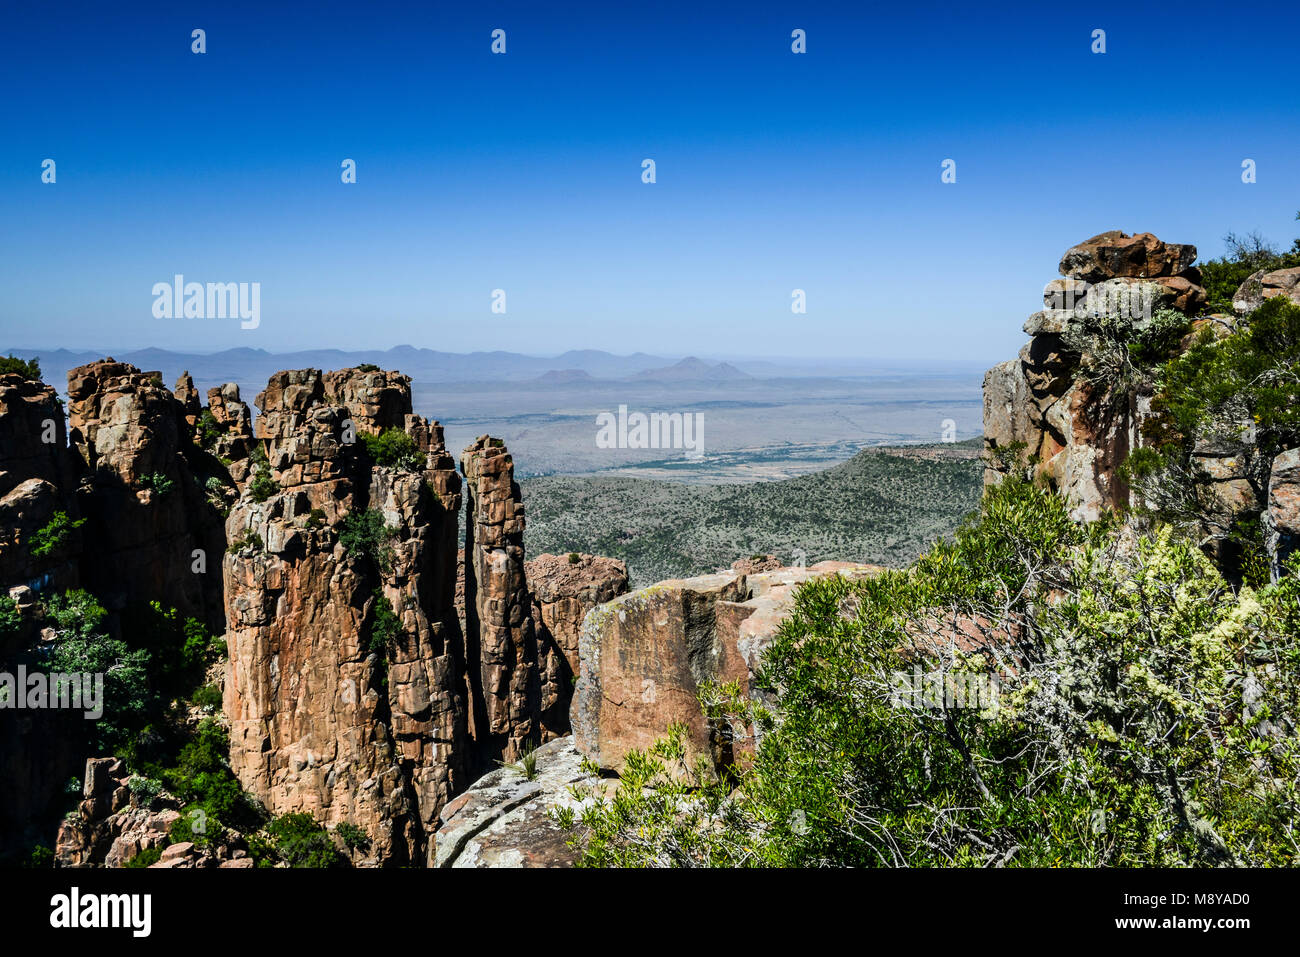 Views from the Valley of Desolation, South Africa - Stock Image